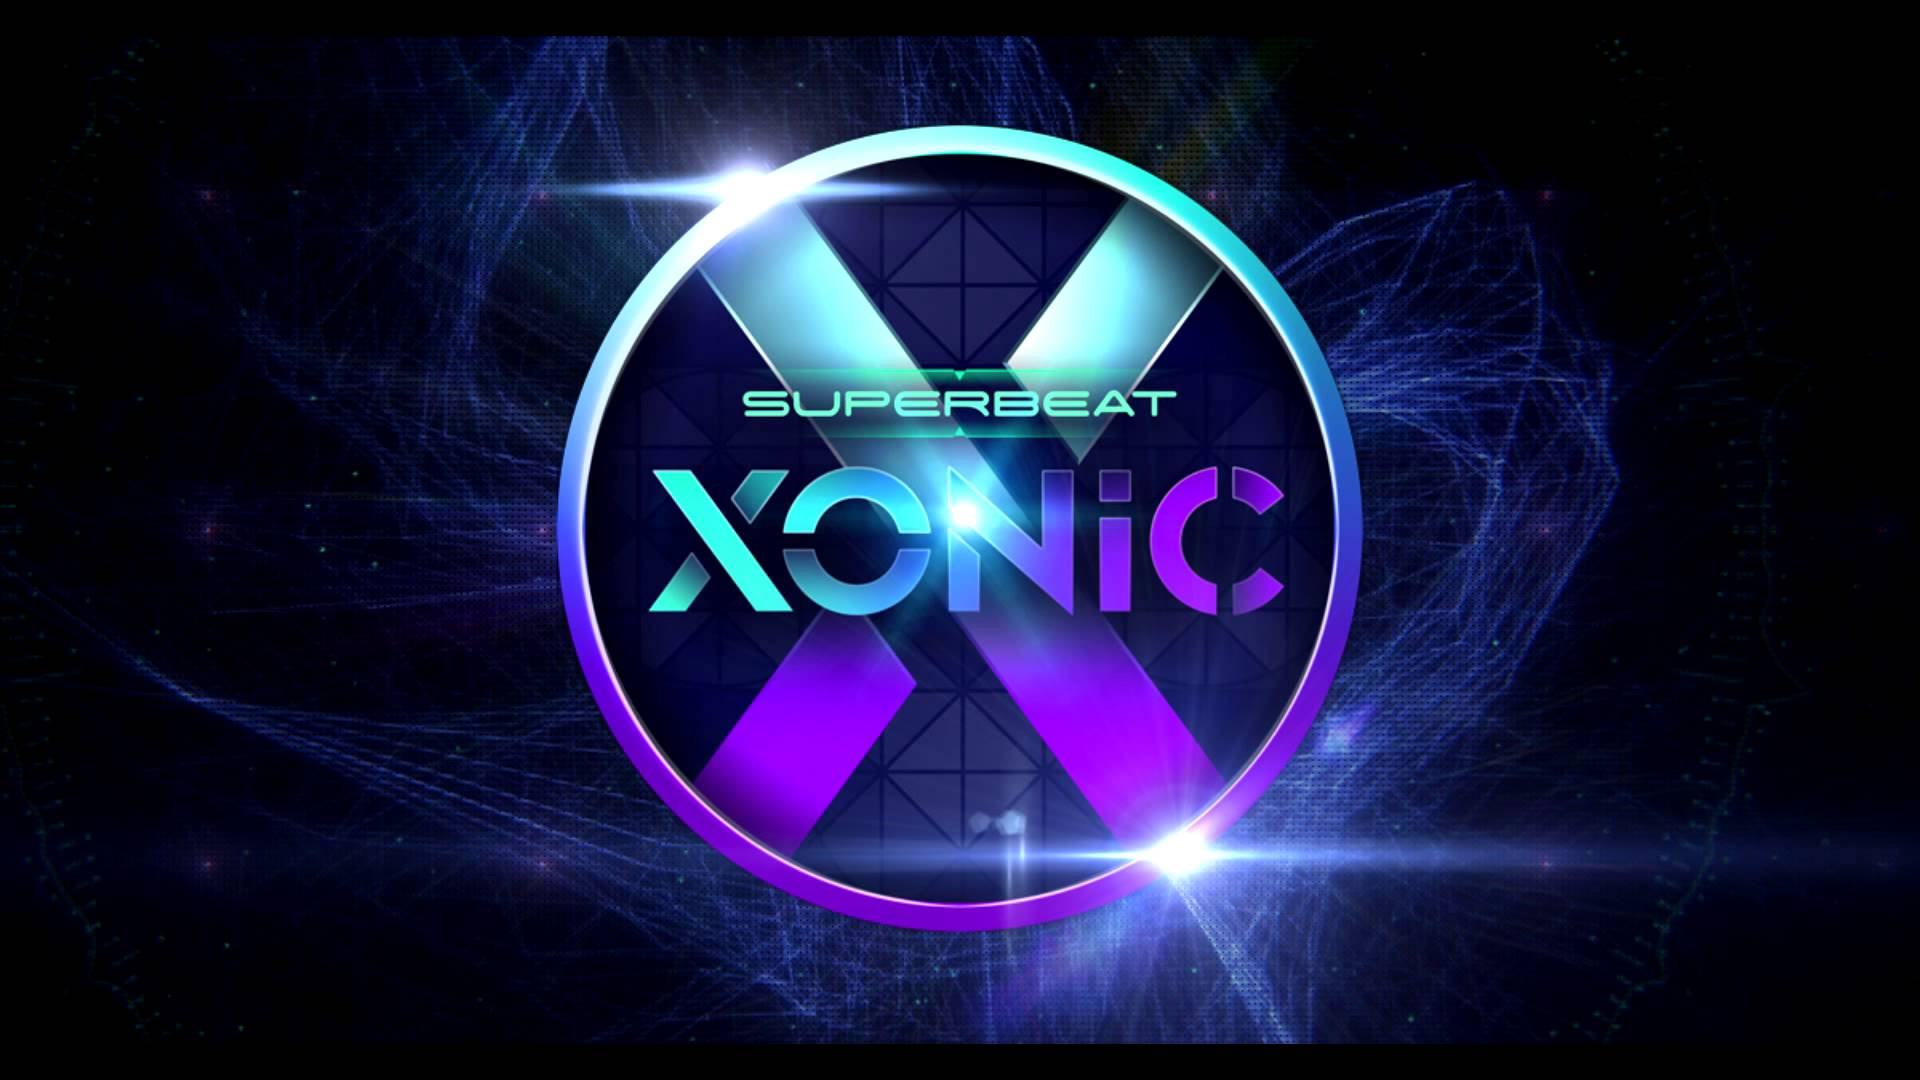 Release date for Superbeat: XONic coming to Switch